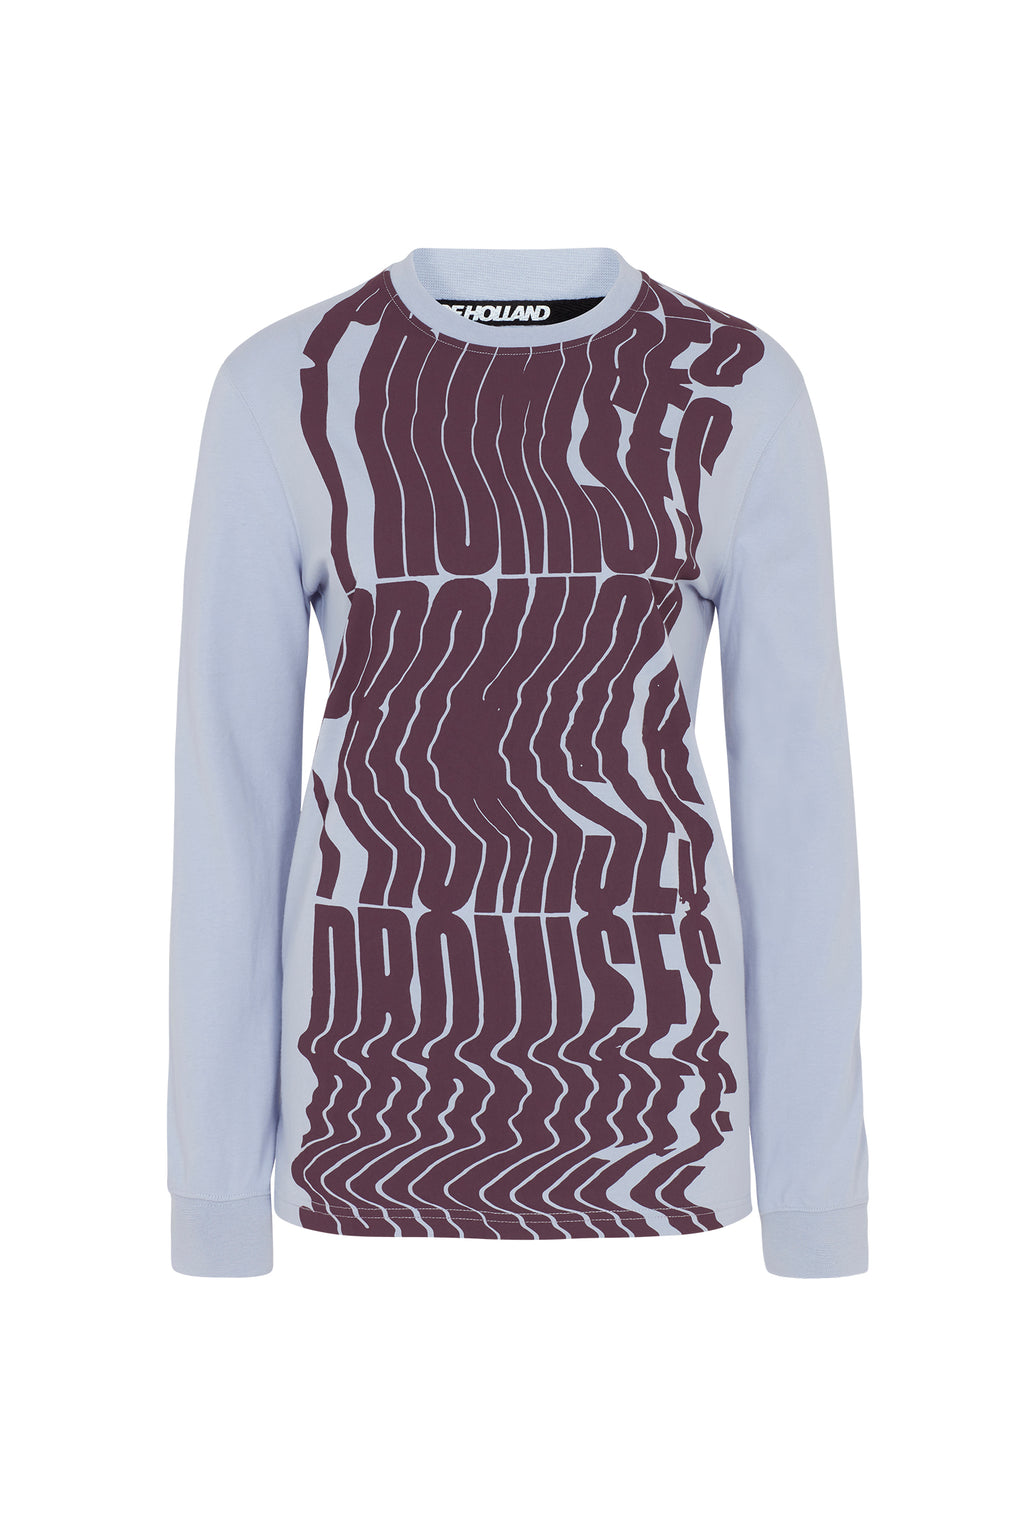 House of Holland x Andrew Brischler 'Promises' Lilac Long Sleeve Top by House of Holland